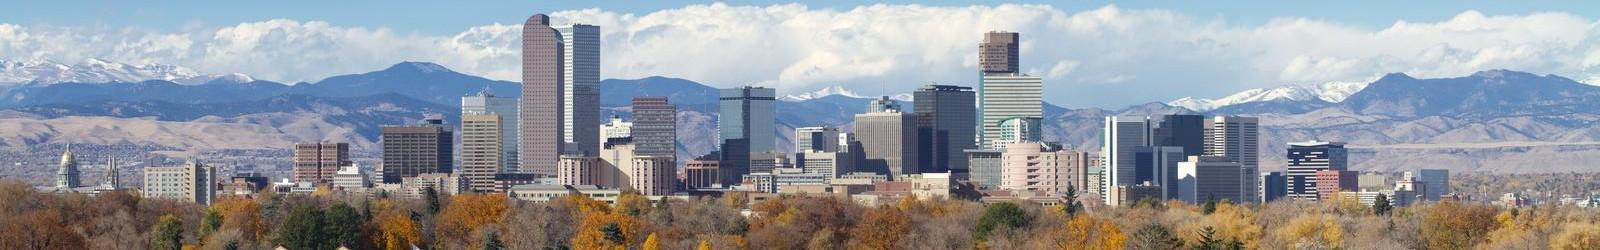 Divorce therapists in Denver, Colorado